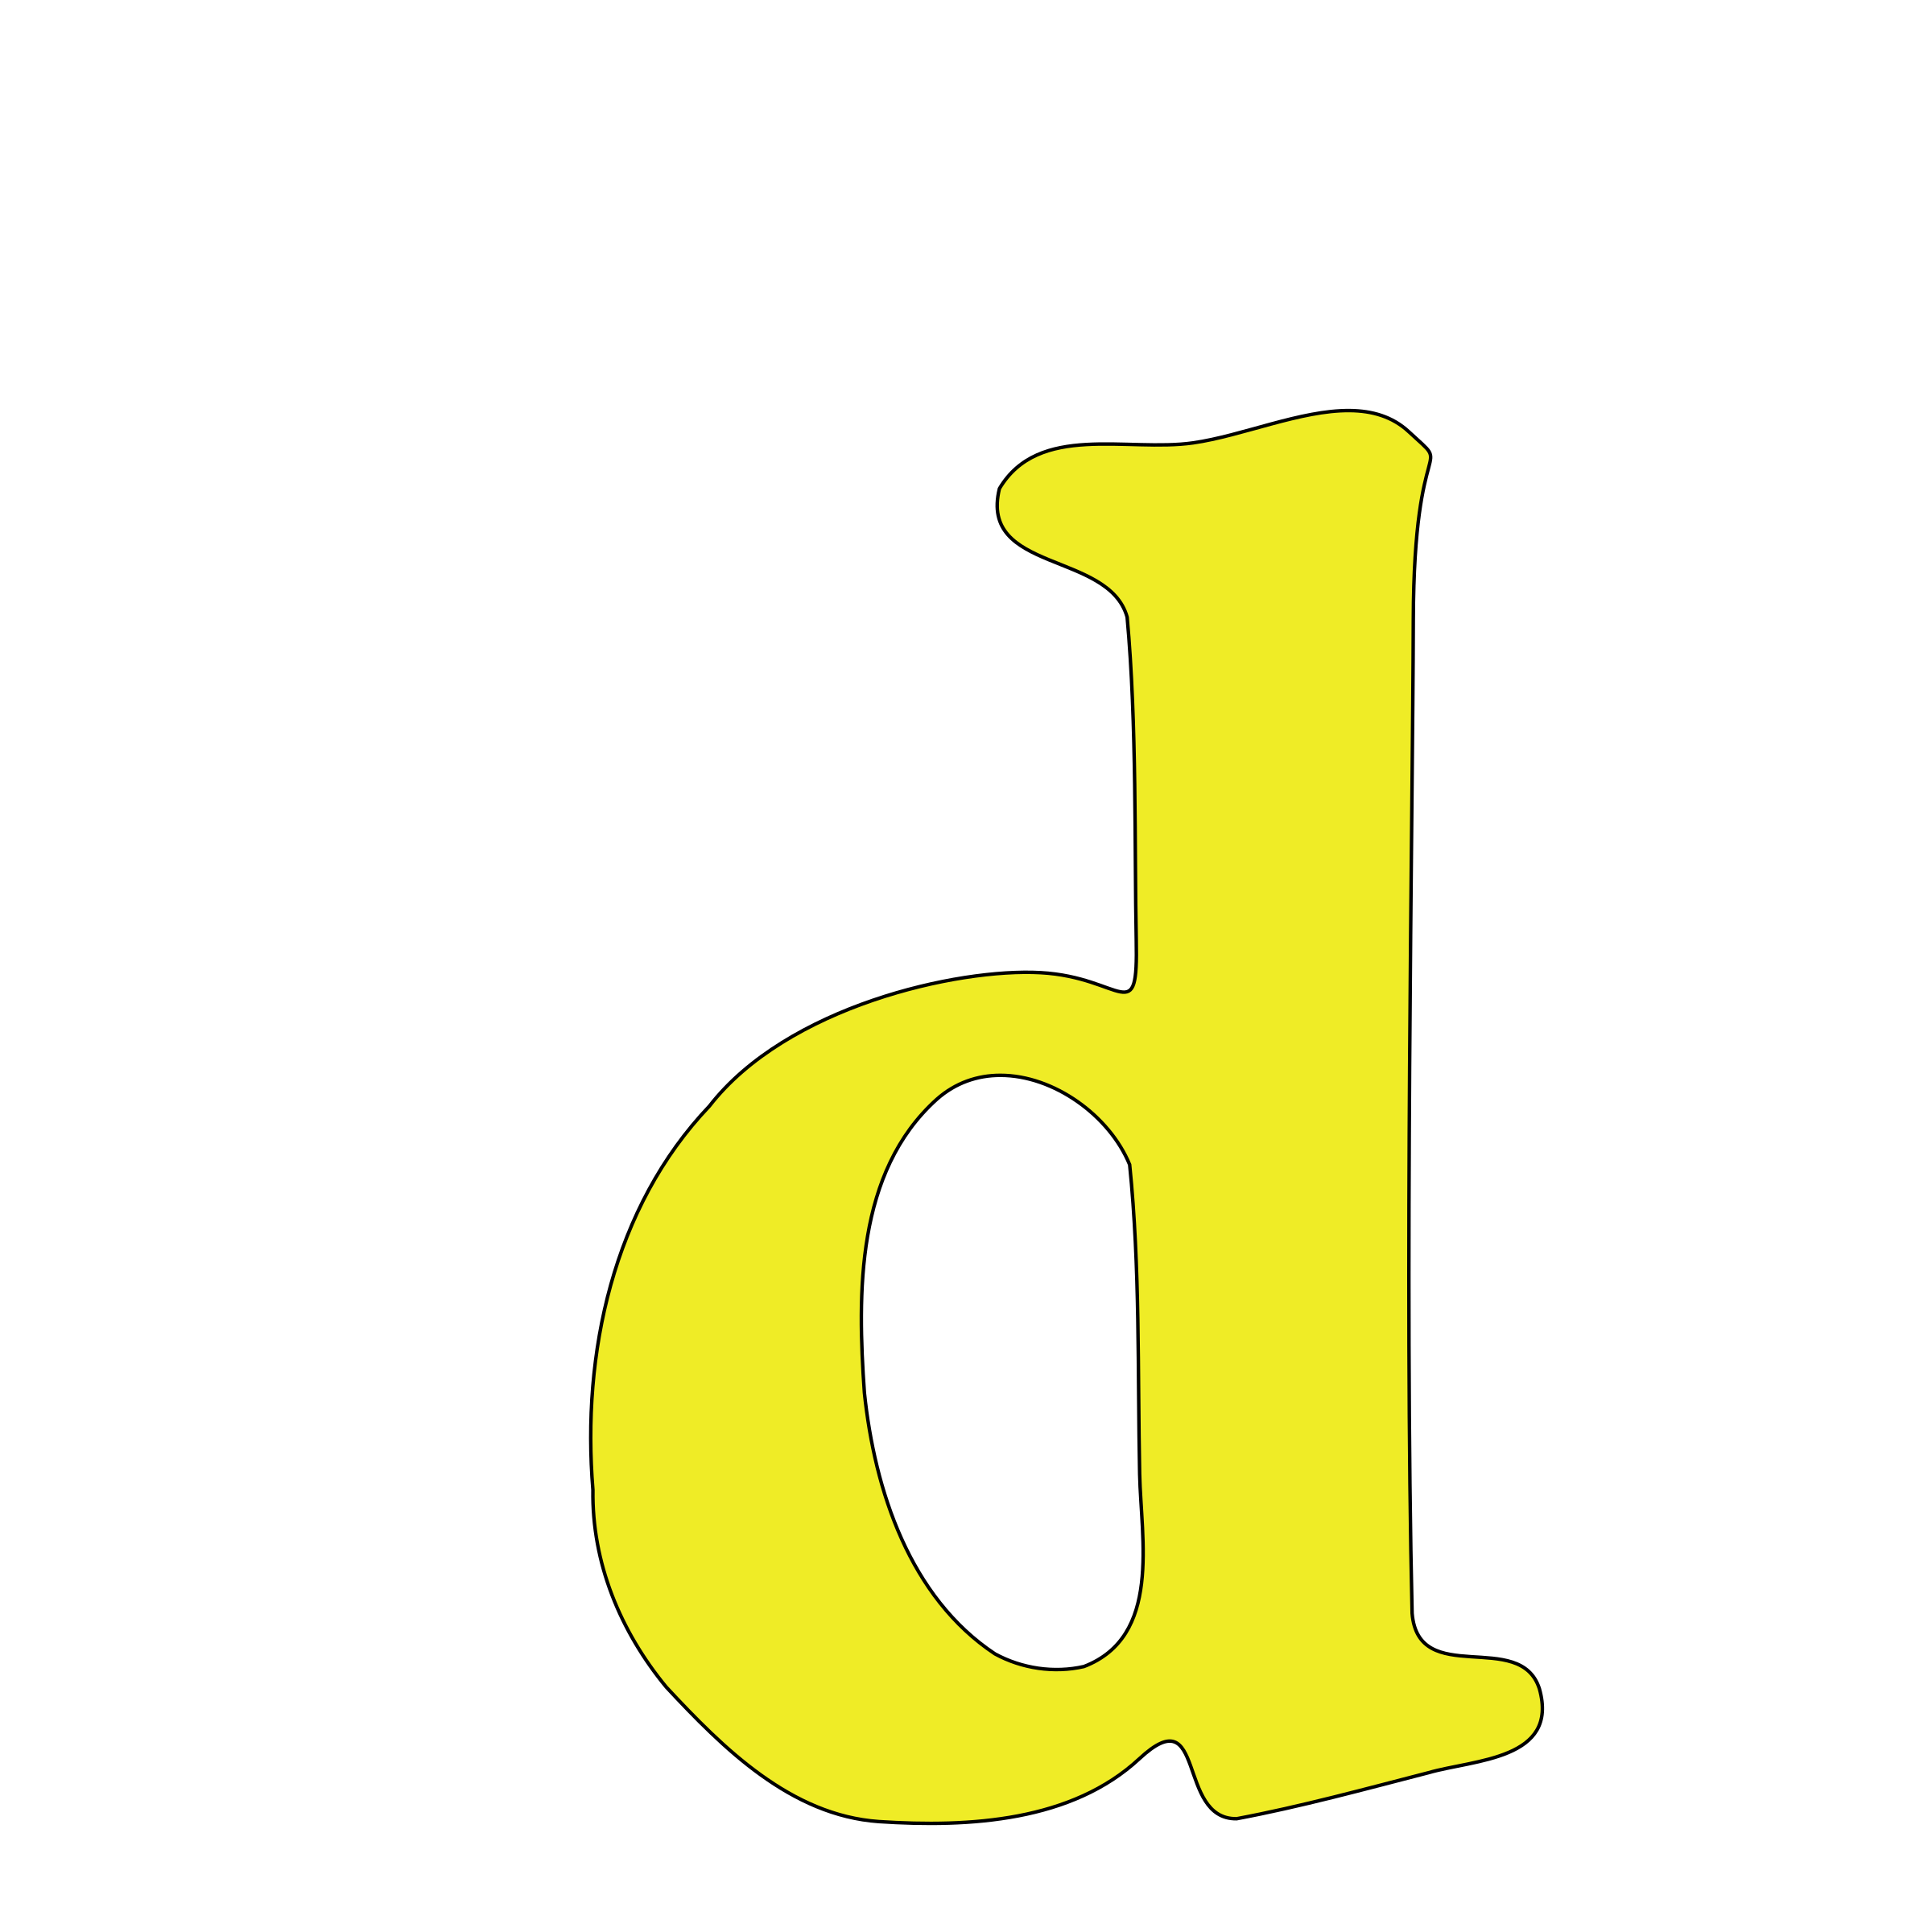 lowercase d by tuamora